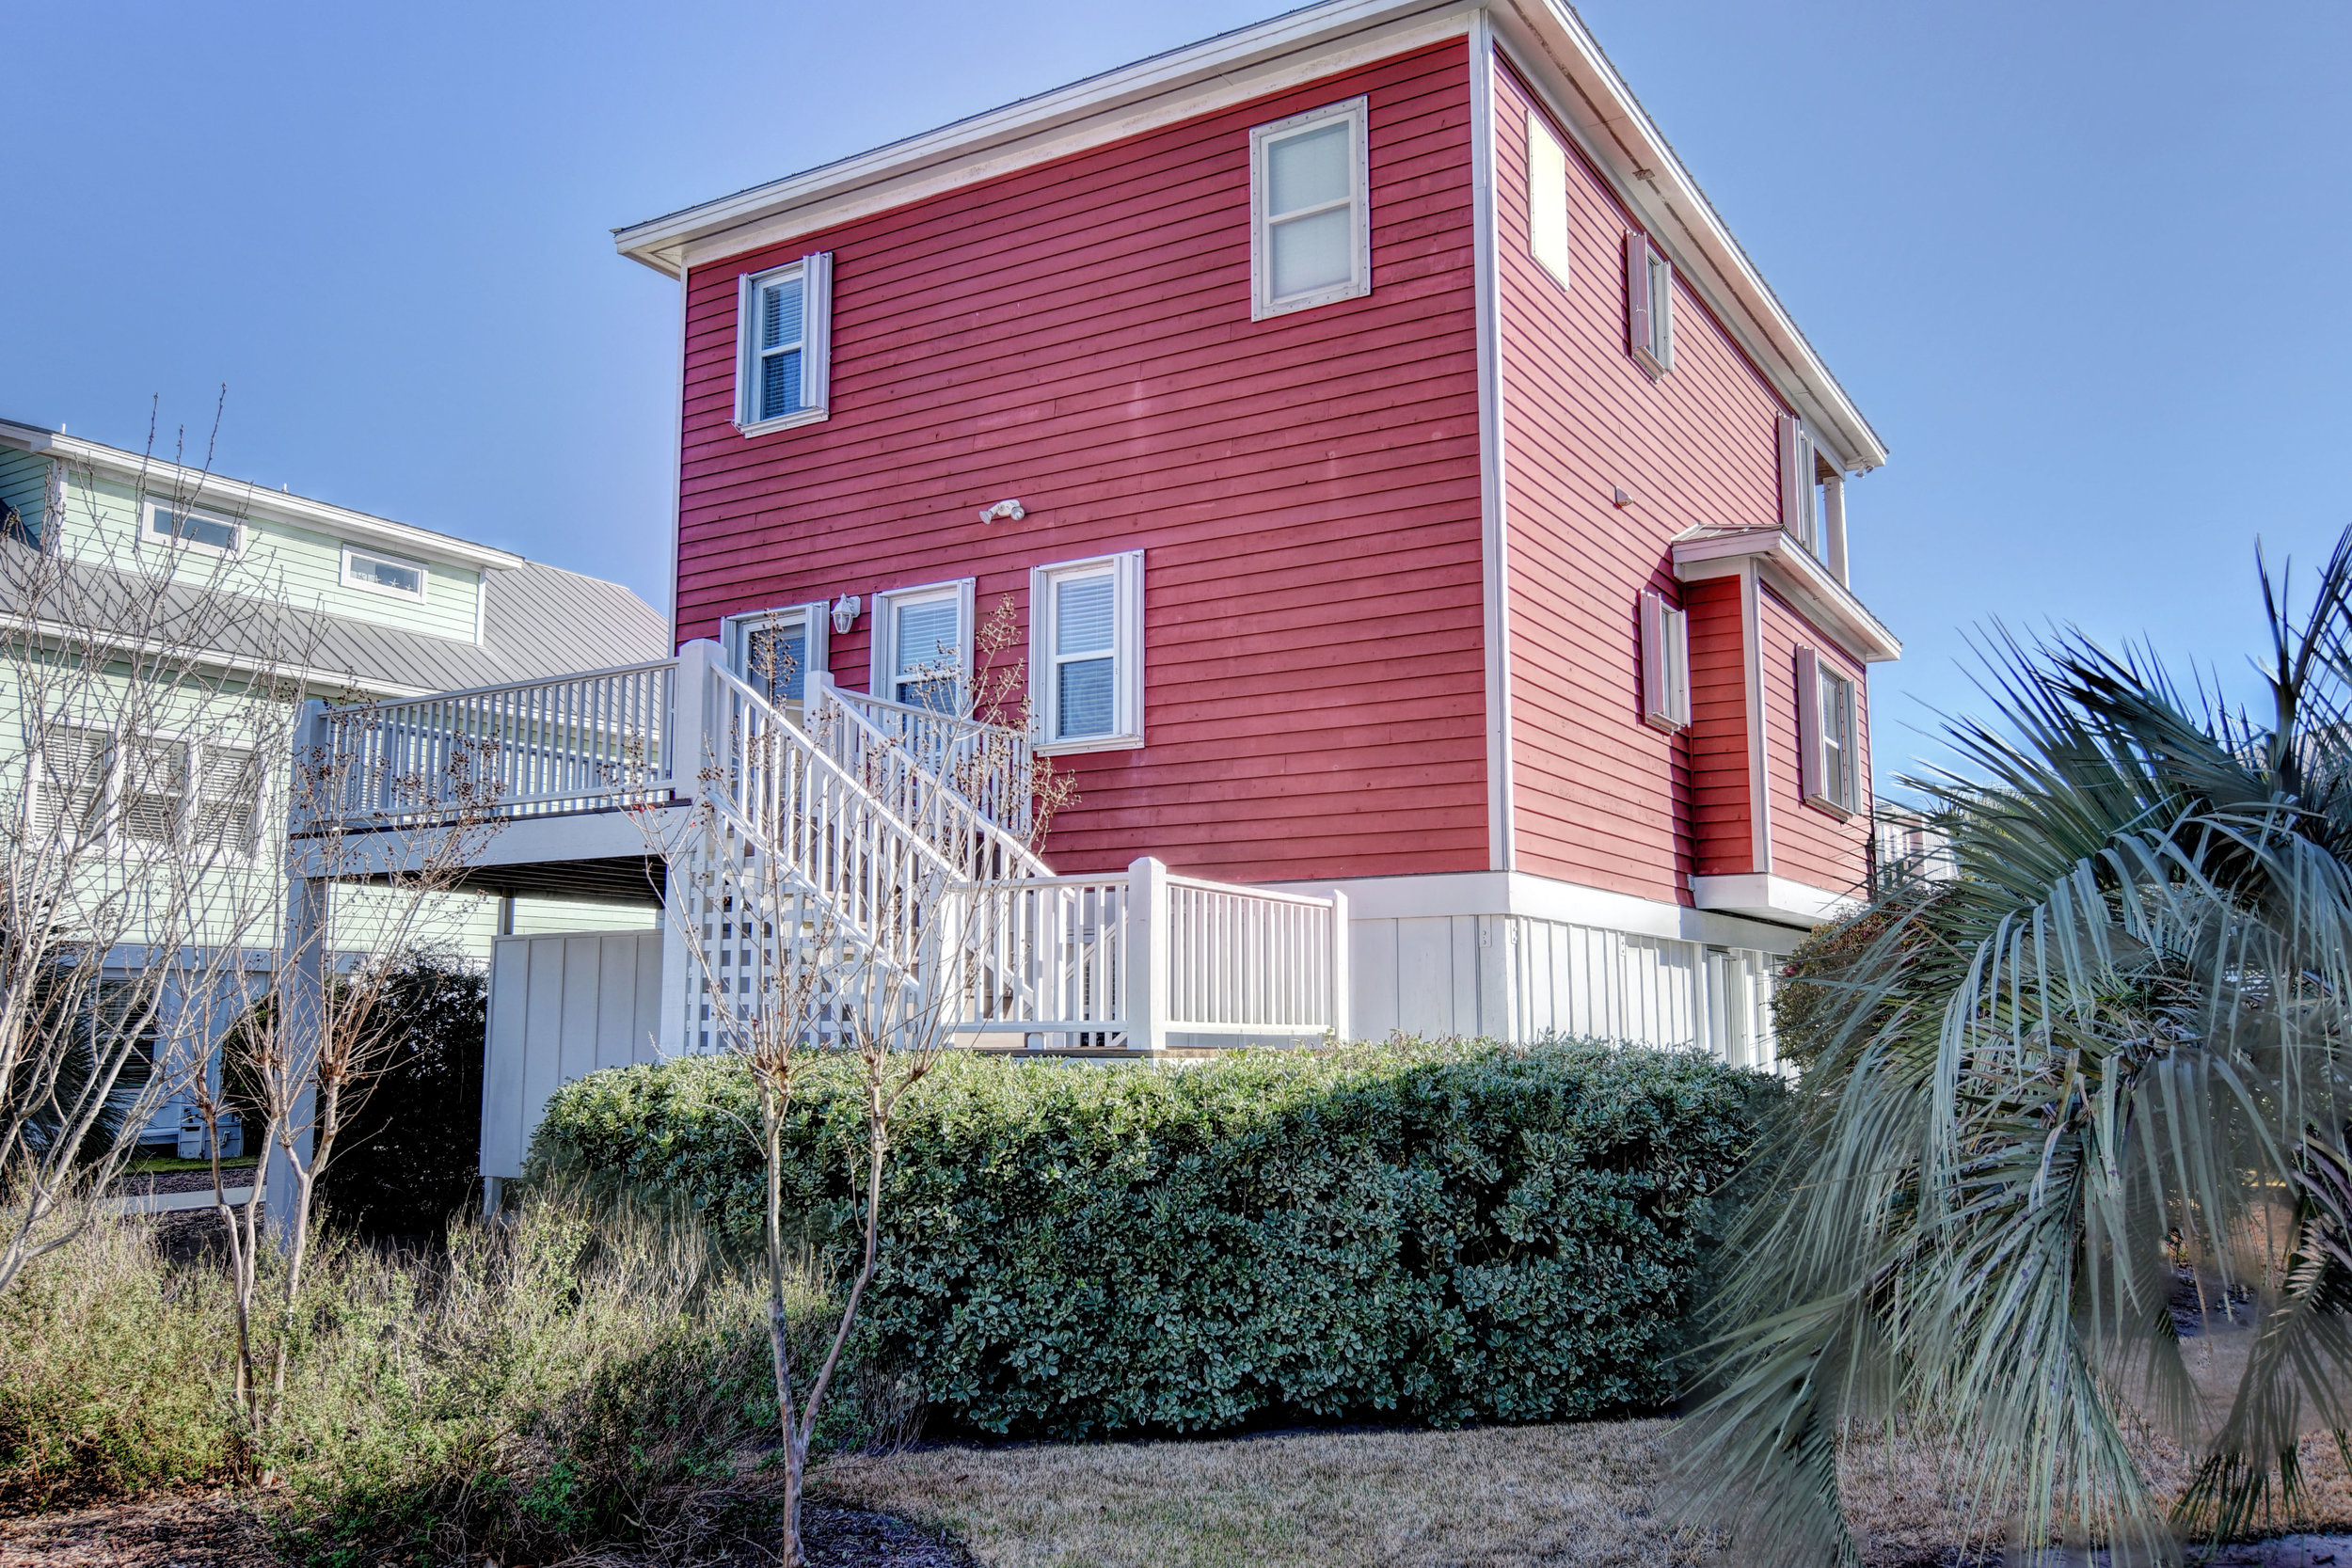 148 Seawatch Way Kure Beach NC-print-027-31-DSC 2079 80 81-4200x2801-300dpi.jpg